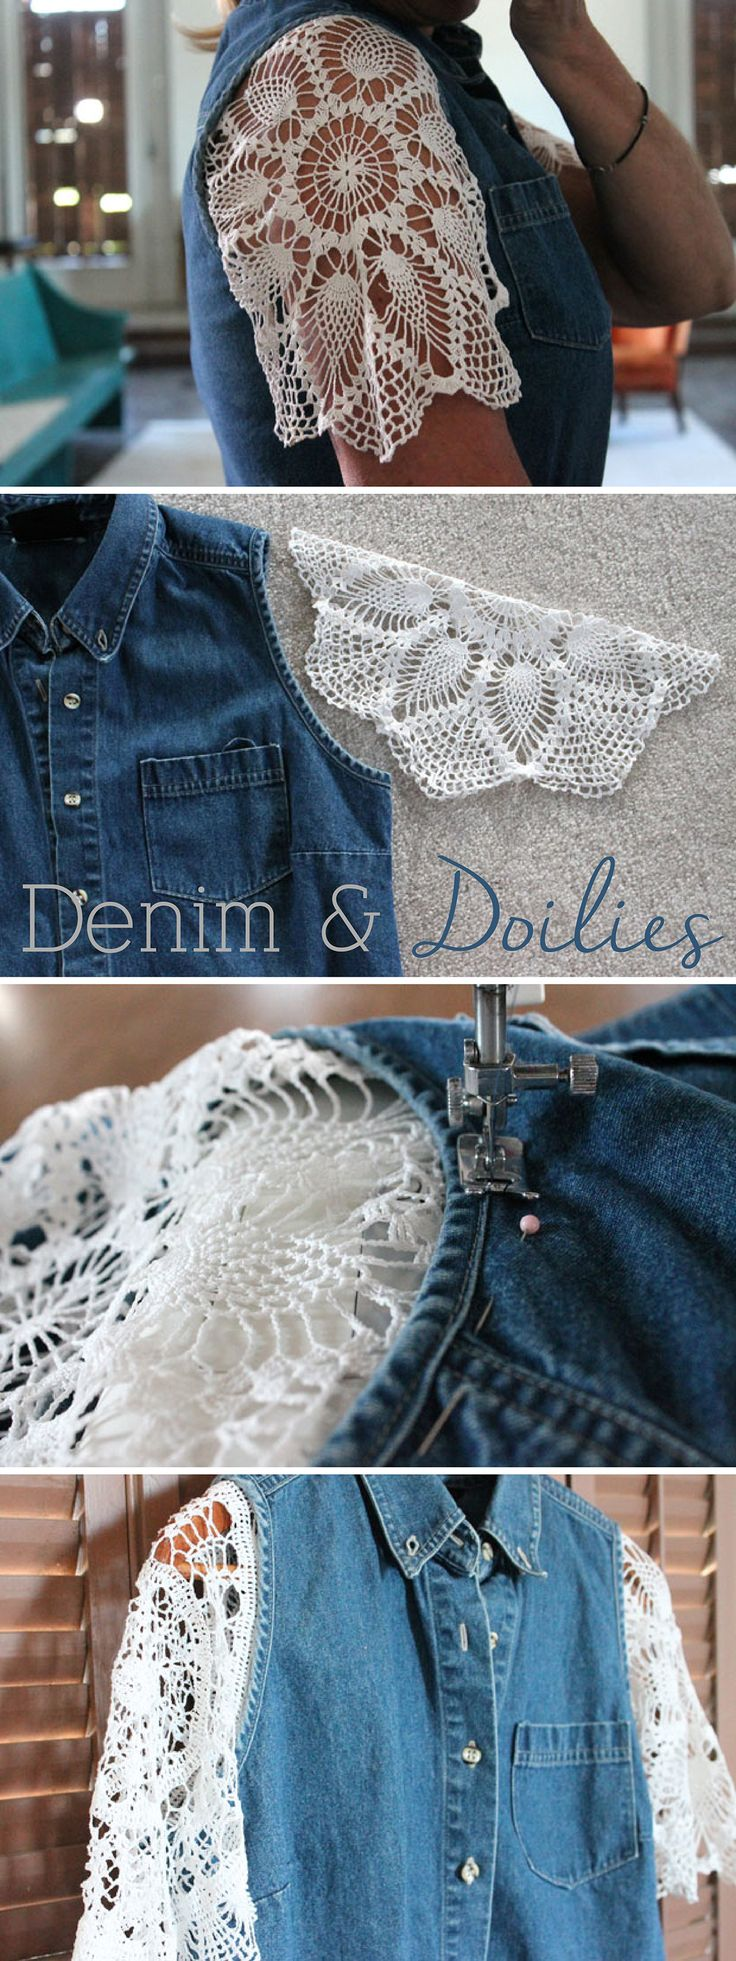 Add a delicate touch to your jean jacket with this  super cute tutorial! Doiles and denim looks amazing together. Step-by-step instructions here: http://www.ehow.com/ehow-crafts/blog/denim-and-doilies-a-delightful-dichotomy/?utm_source=pinterest&utm_medium=fanpage&utm_content=blog